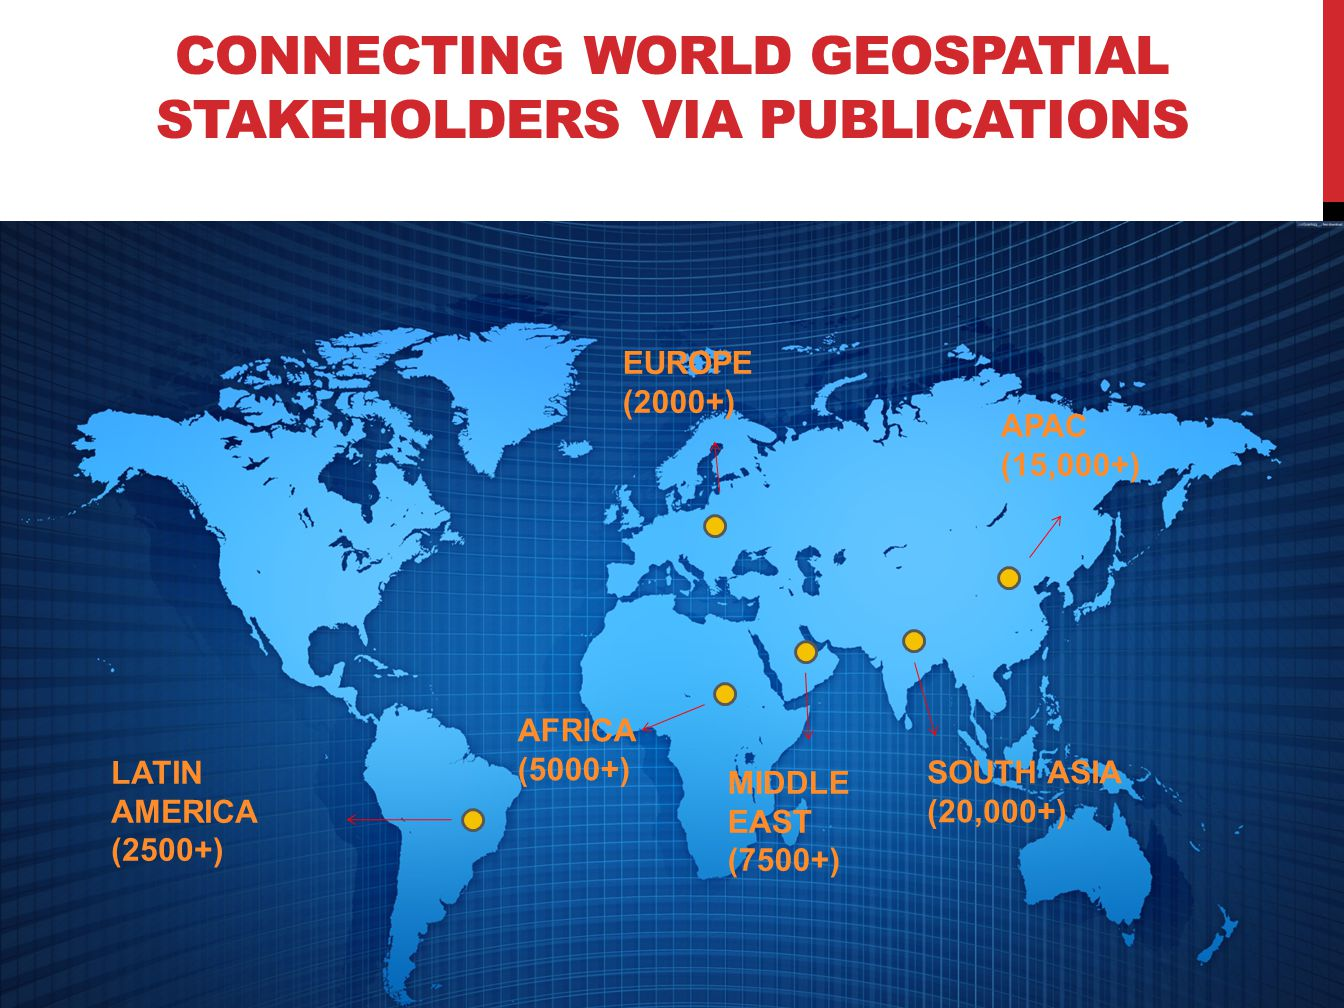 CONNECTING WORLD GEOSPATIAL STAKEHOLDERS VIA PUBLICATIONS SOUTH ASIA (20,000+) EUROPE (2000+) MIDDLE EAST (7500+) AFRICA (5000+) LATIN AMERICA (2500+) APAC (15,000+)